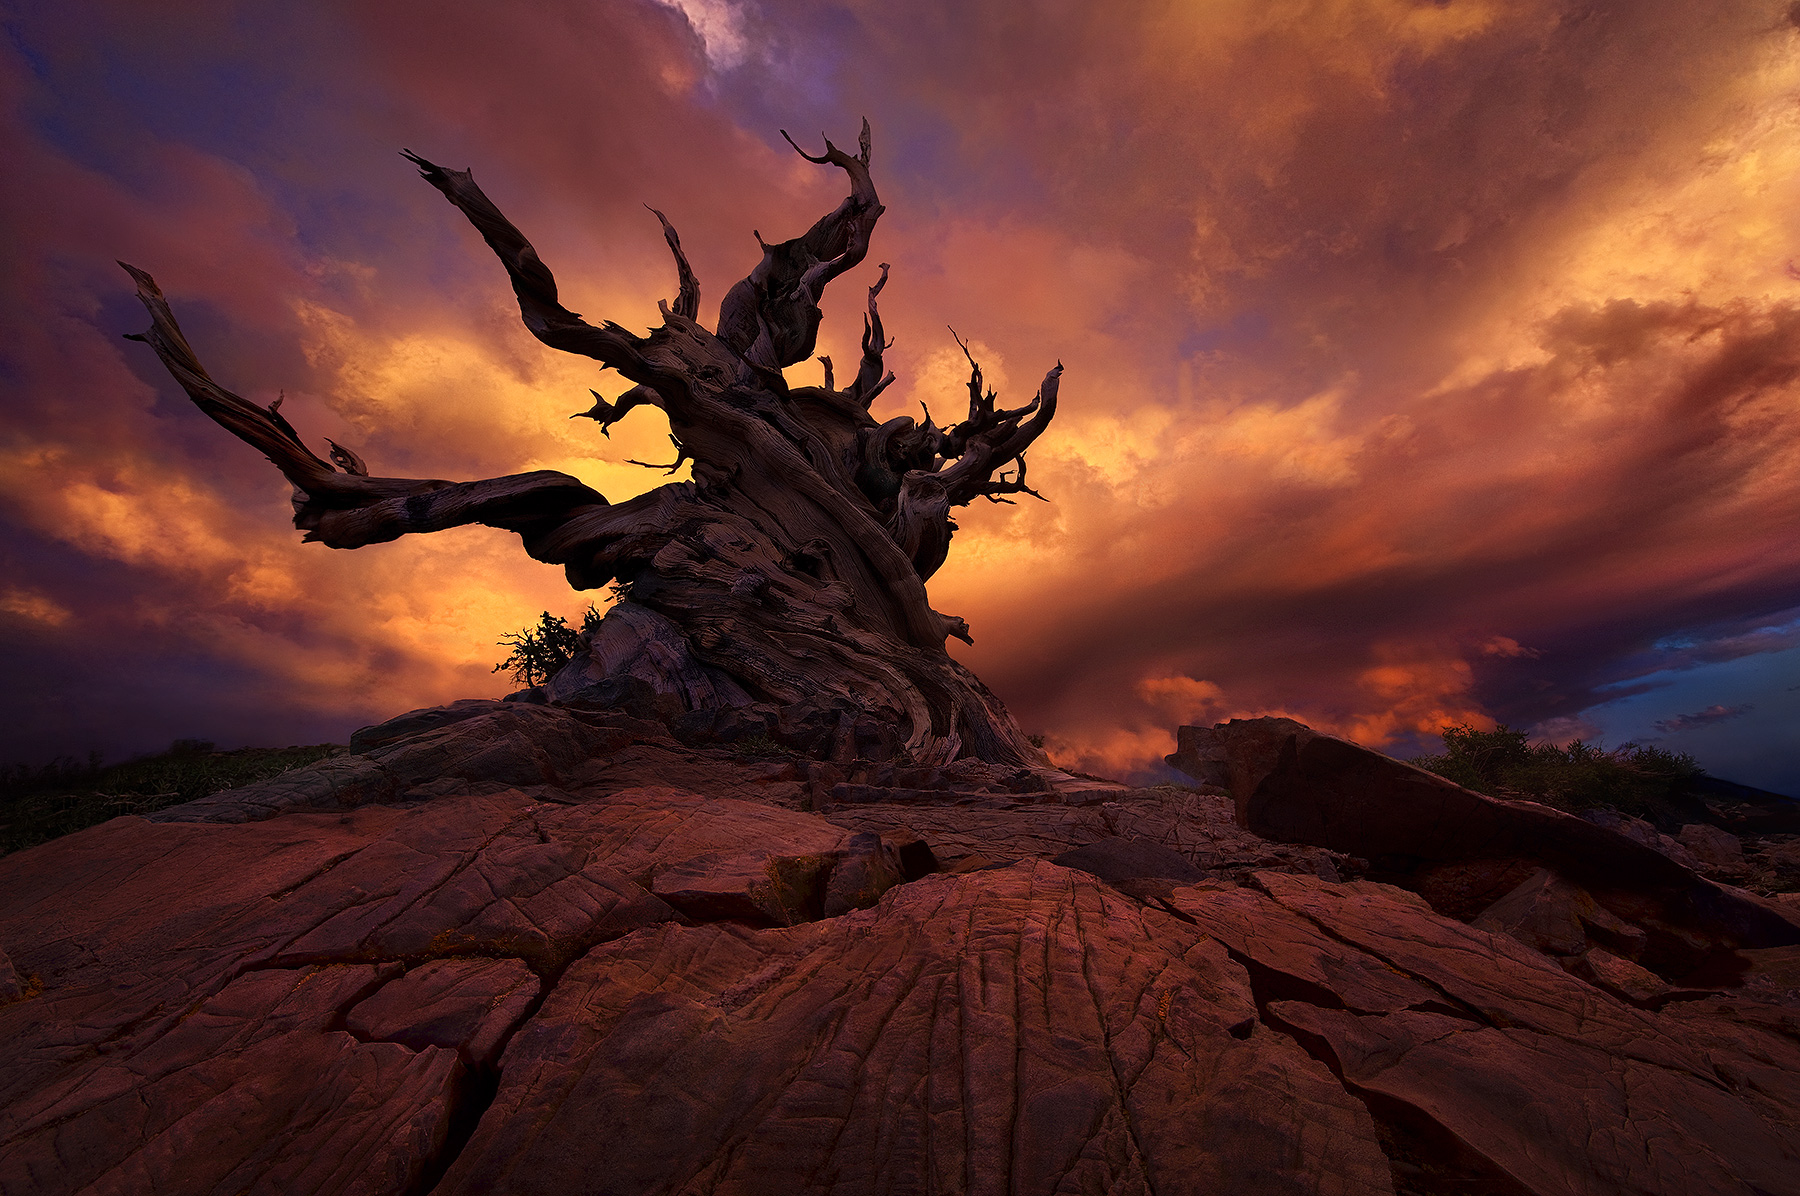 Rider of the Tempest (2010) | California | Marc Adamus